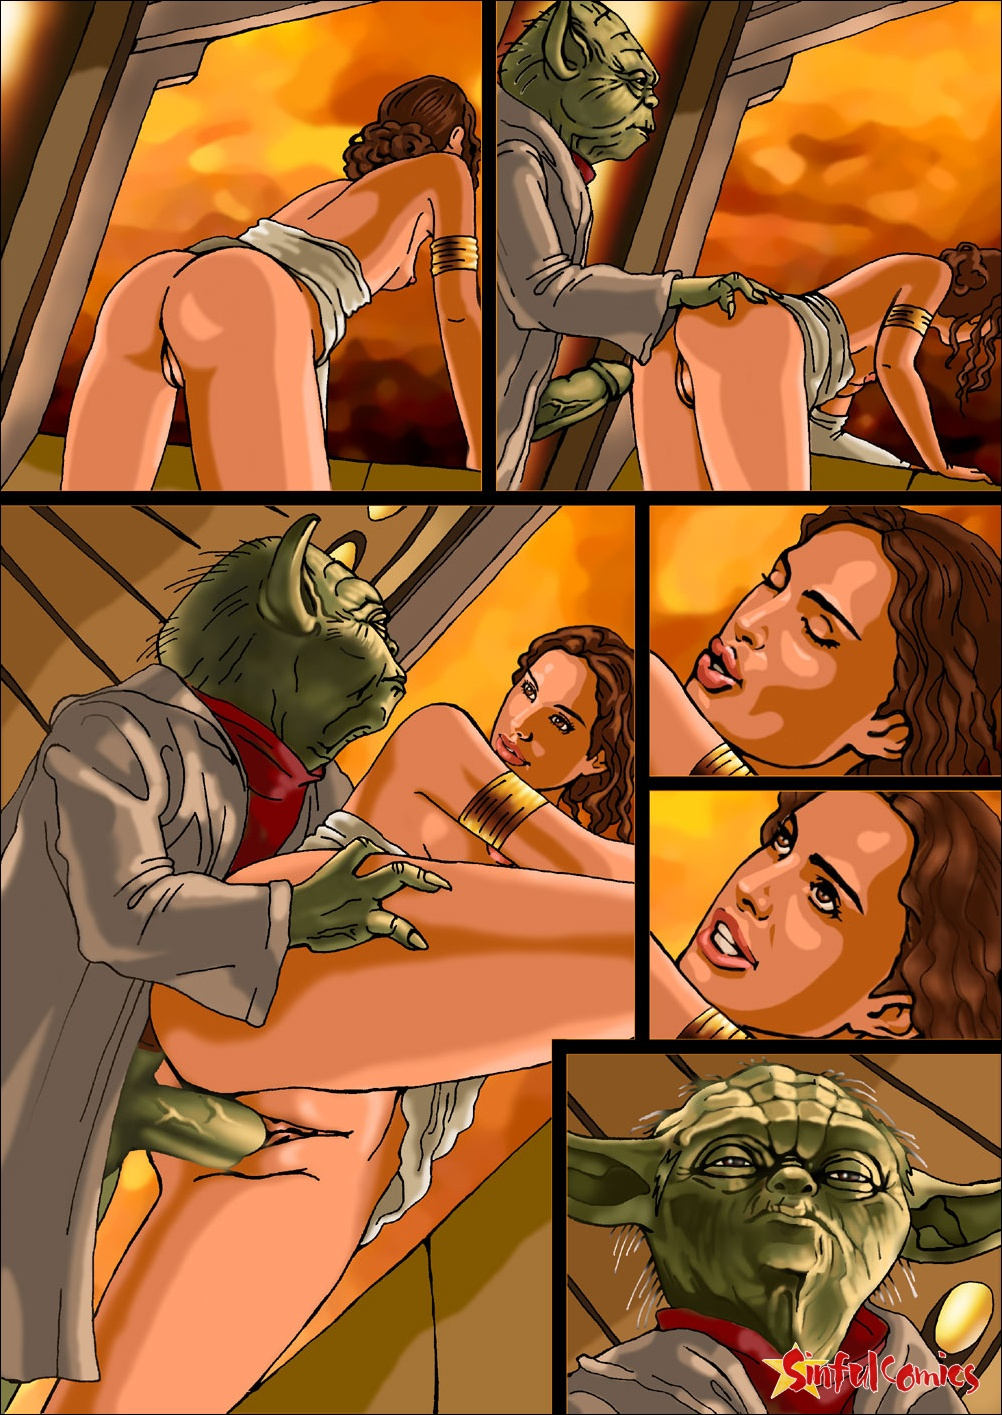 Star wars sex anime sexy pics